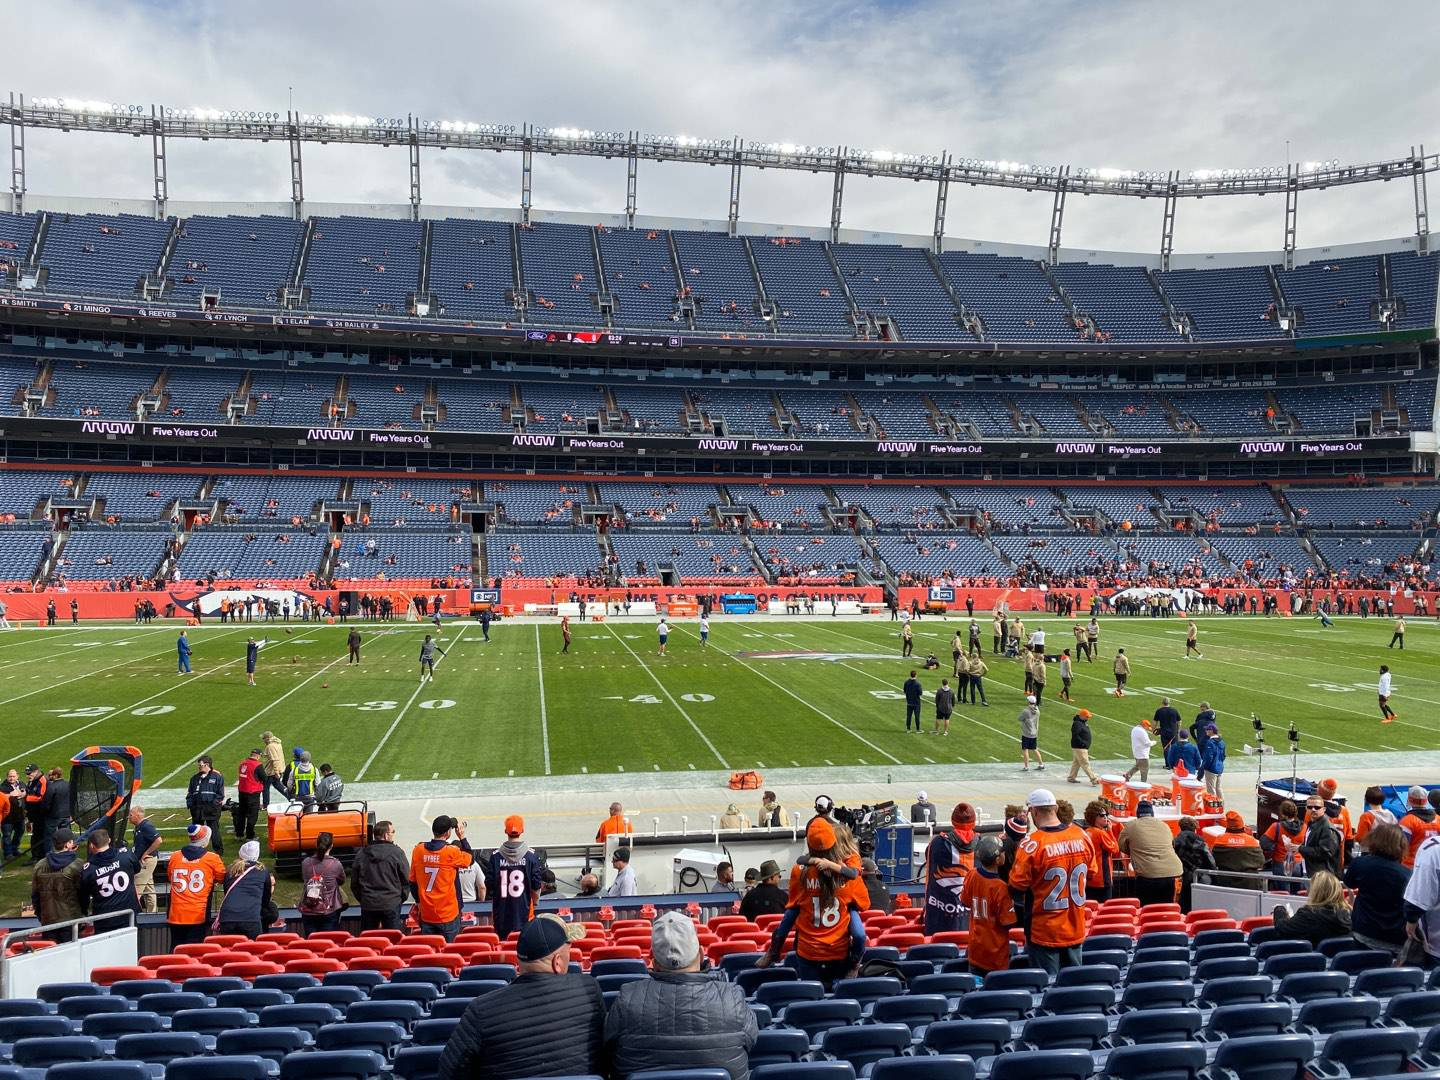 Empower Field at Mile High Stadium Section 106 Rangée 16 Siège 14